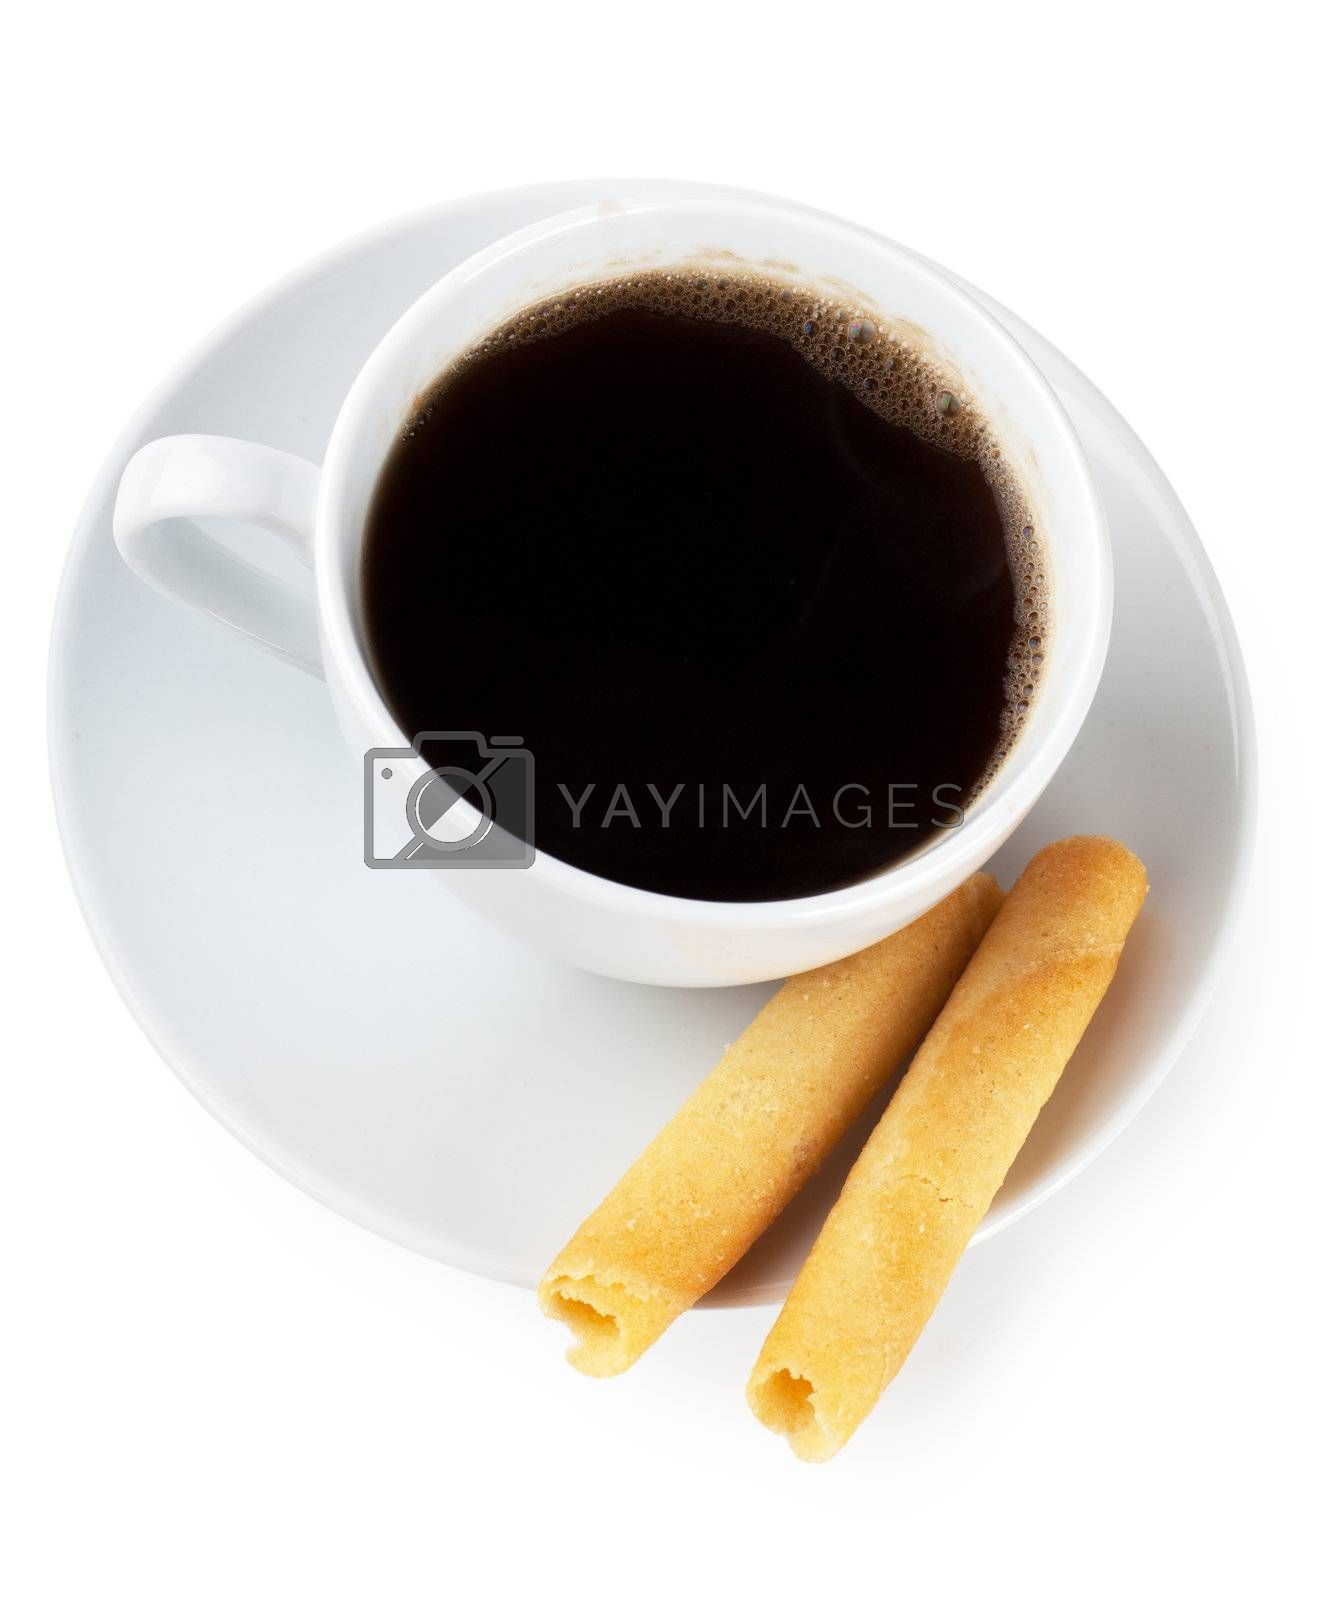 Royalty free image of Coffee and cookies by AGorohov